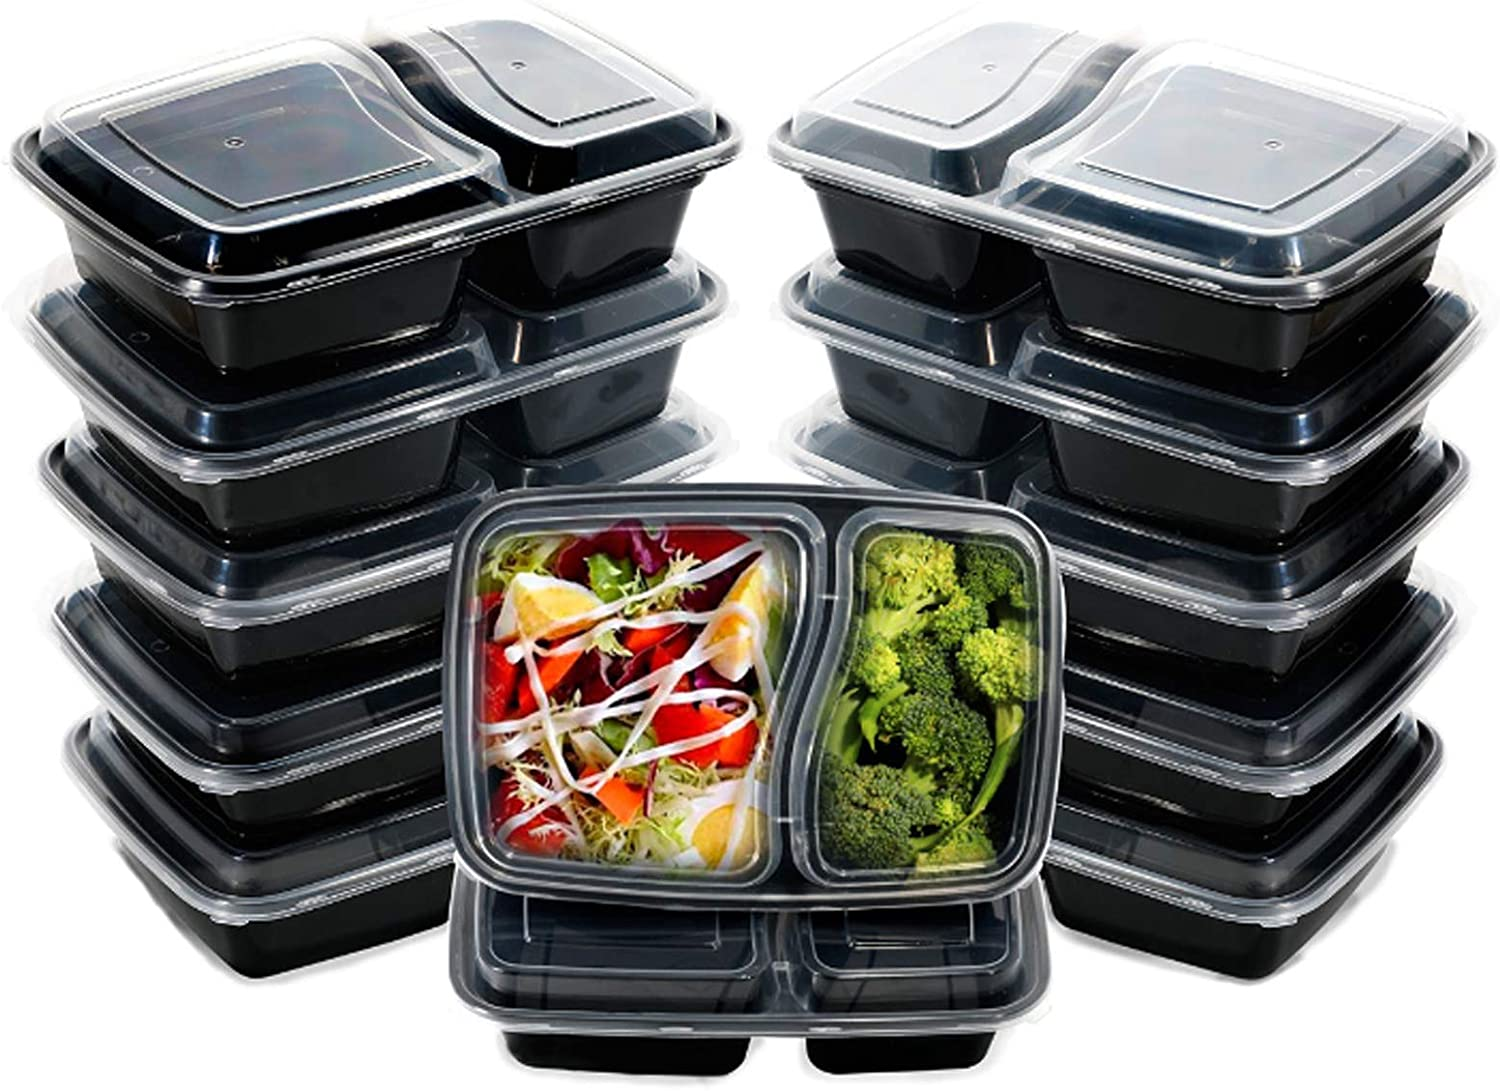 I00000 60pack Meal Prep Containers with Lids, 28 oz Black Rectangular Lunch Containers, 2 Compartment Food Storage Bento Box-Microwaveable, Freezer & Dishwasher Safe